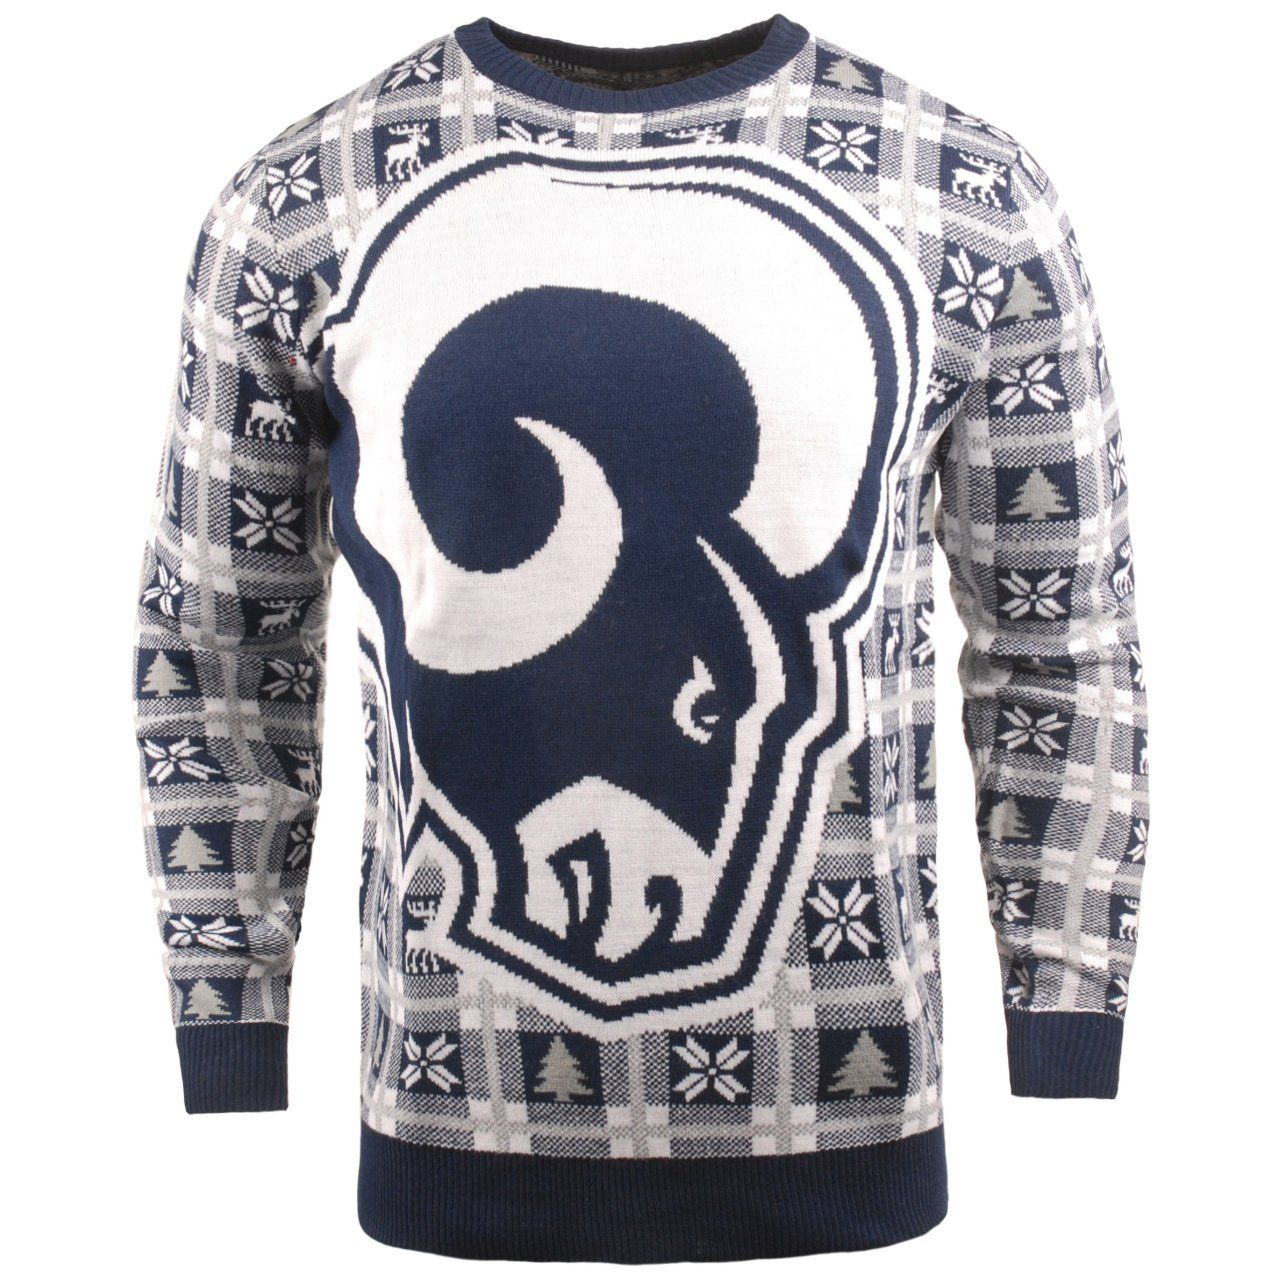 amfoo - NFL Ugly Sweater XMAS Strick Pullover - Los Angeles Rams